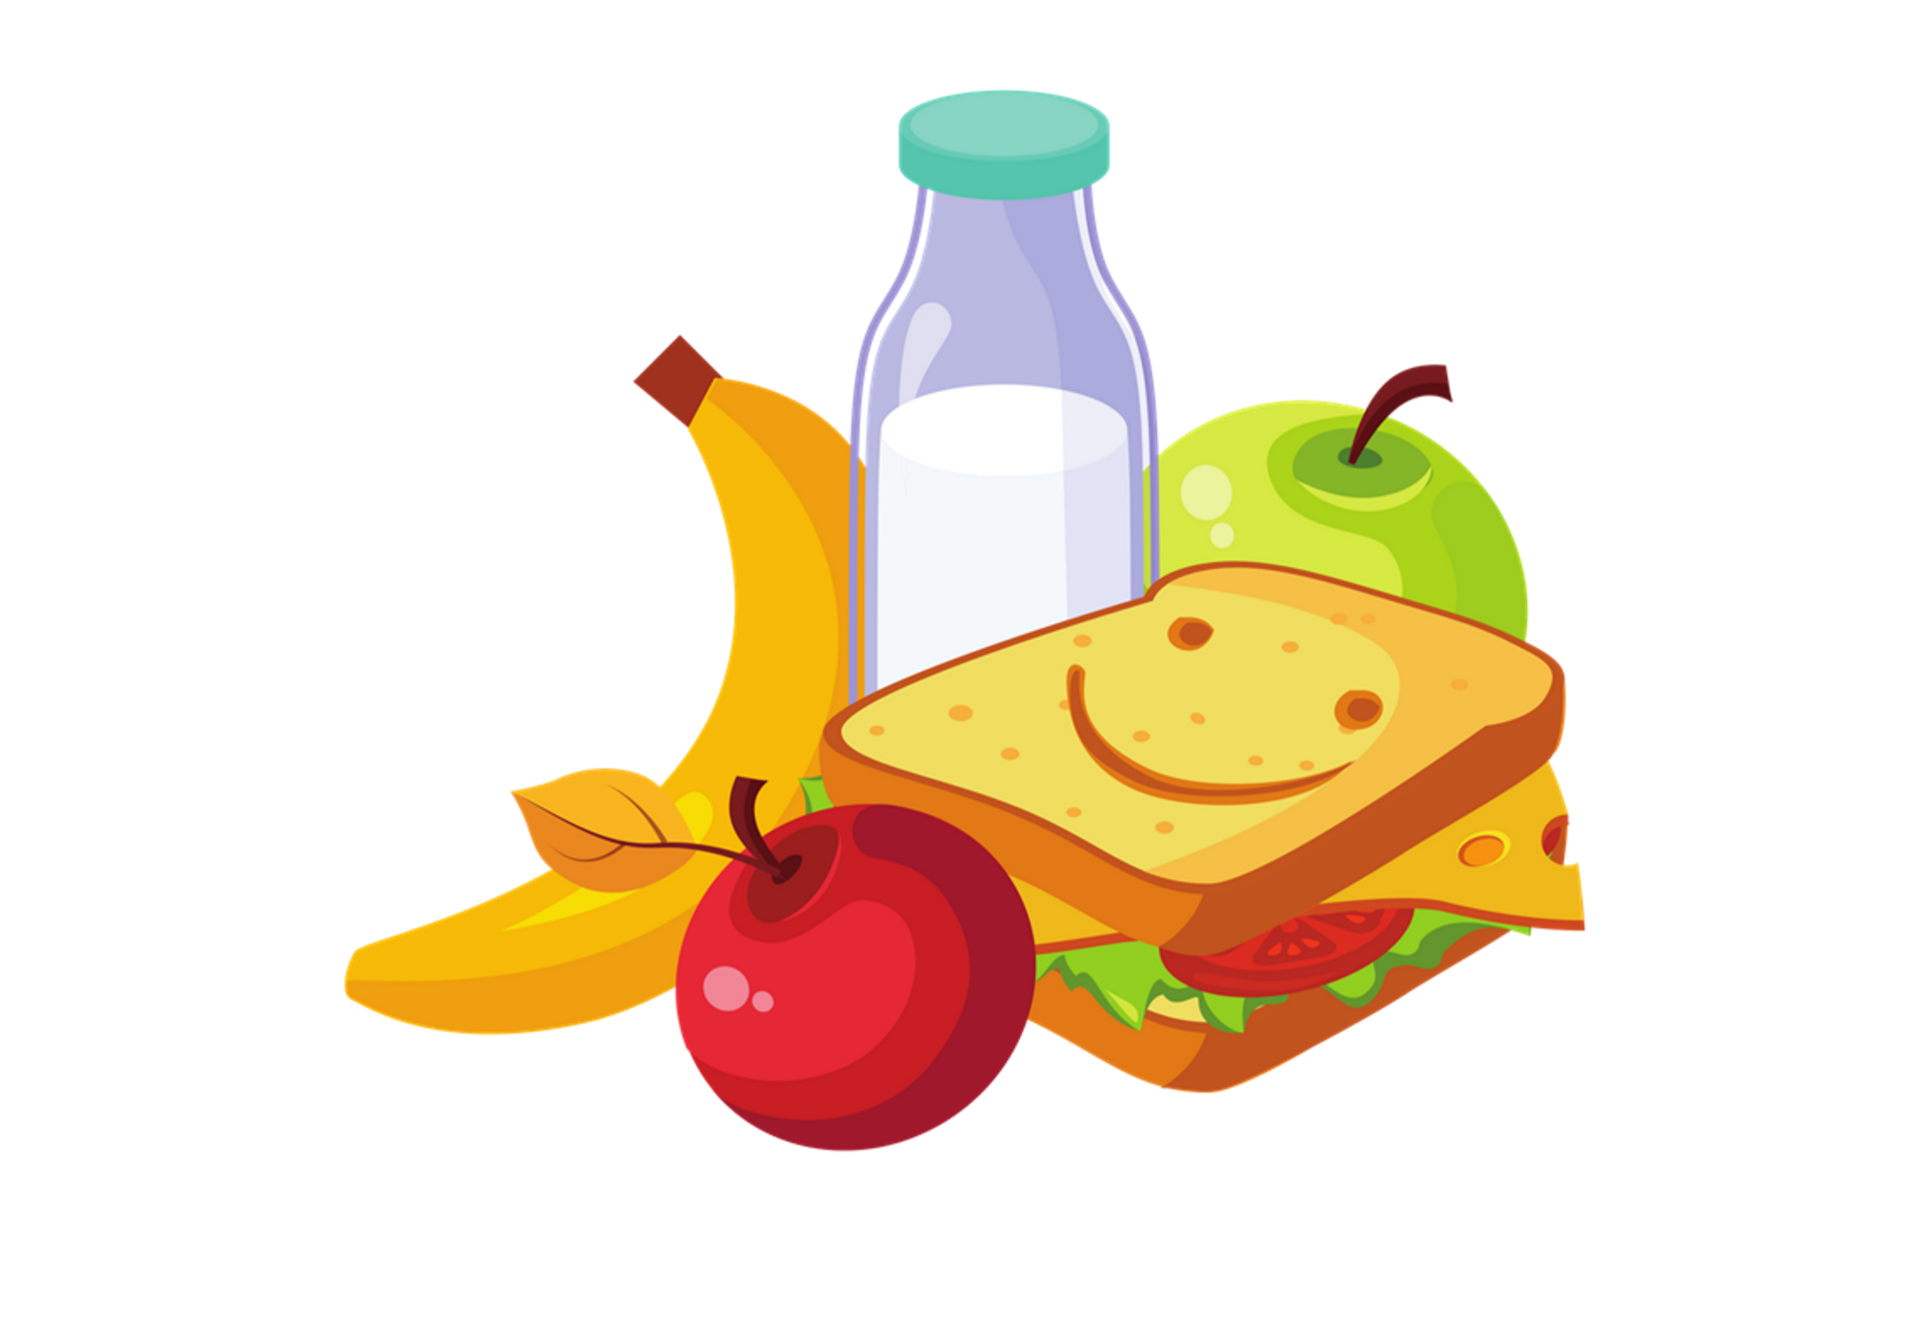 Cartoon sandwich, banana, two apples and a glass bottle of milk.